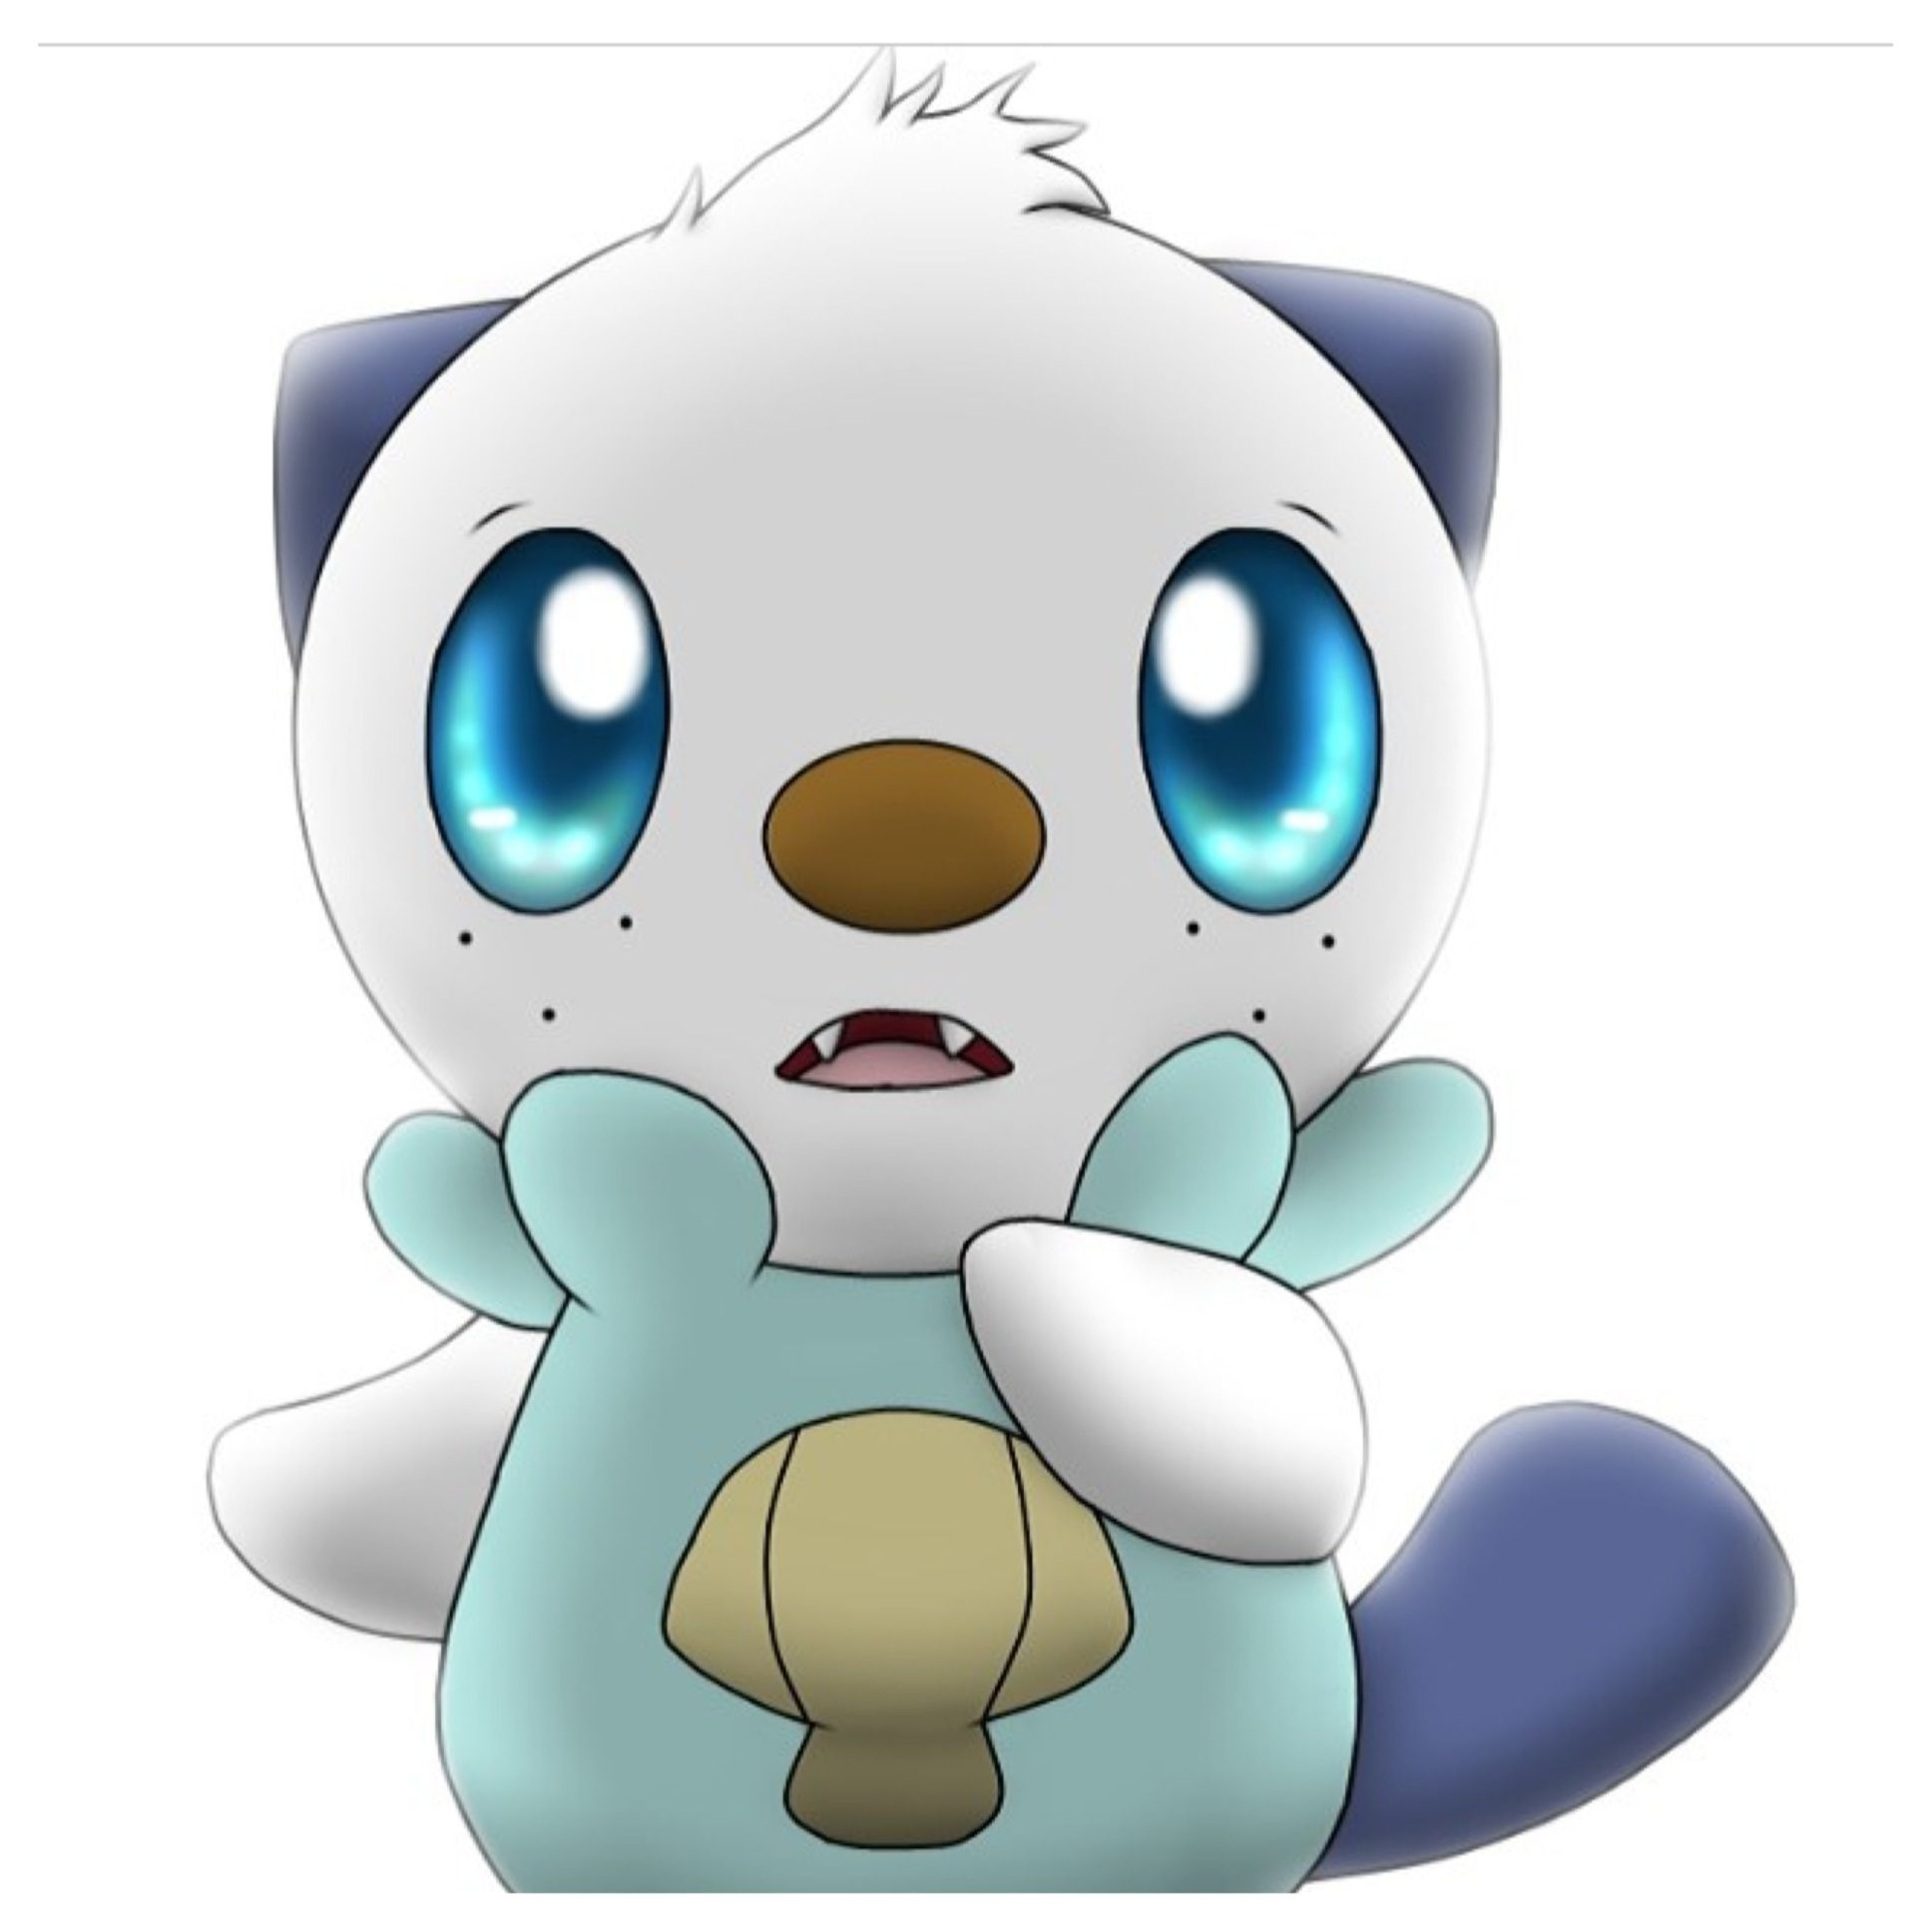 Oshawott Pokemon Case For Iphone Images | Pokemon Images